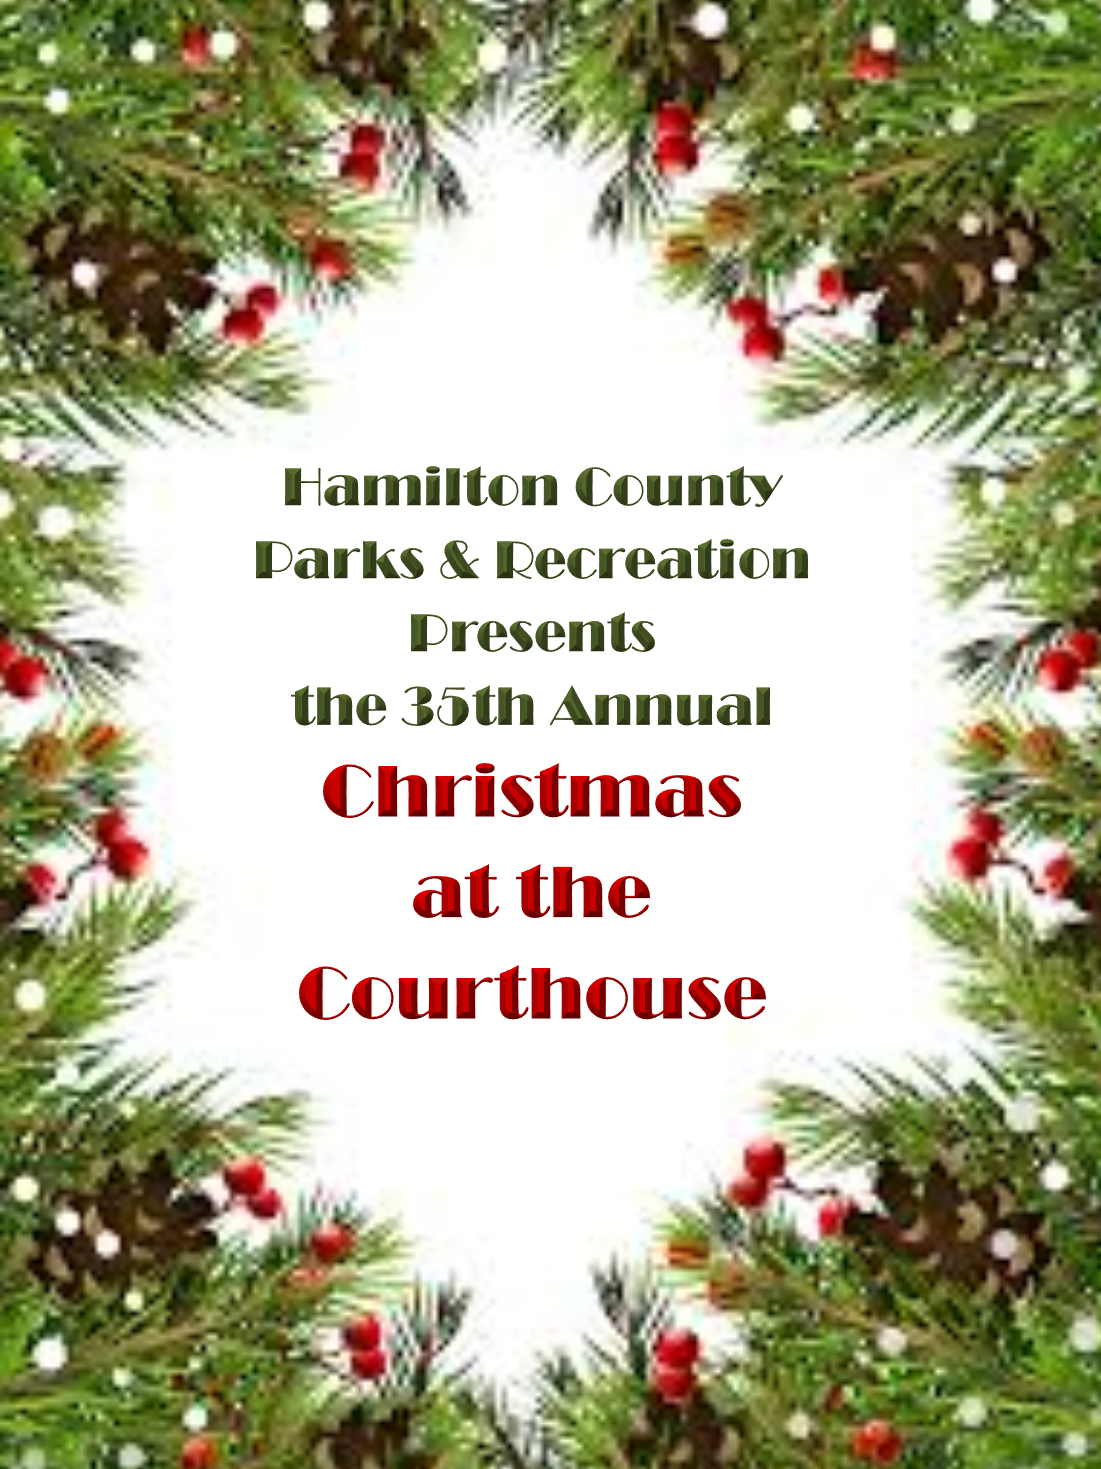 Christmas at the Courthouse Image